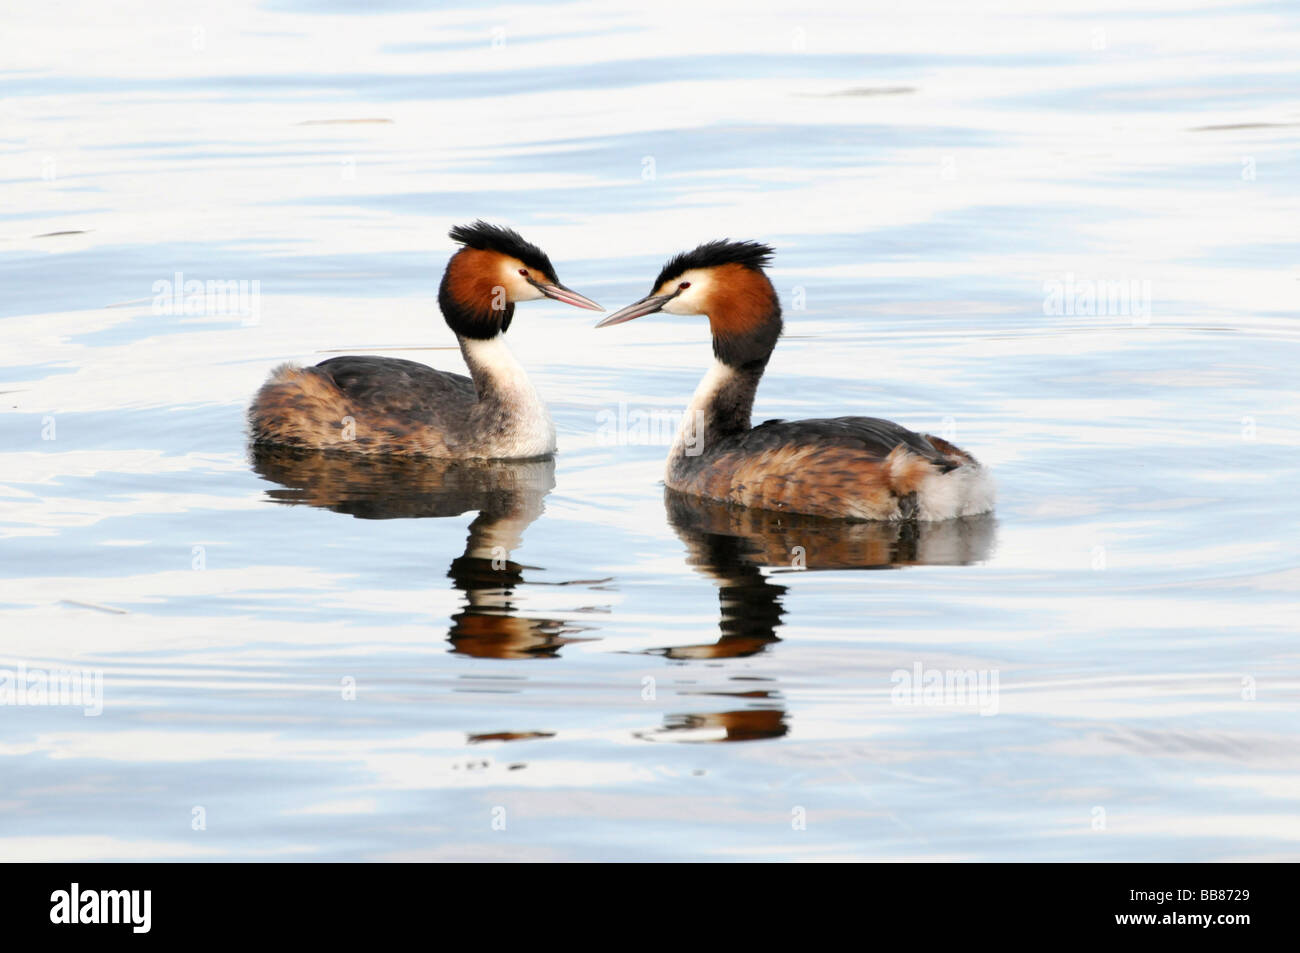 Two Great Crested Grebes (Podiceps cristatus) on the Schweriner See Lake, Schwerin, Mecklenburg-Western Pomerania, Stock Photo